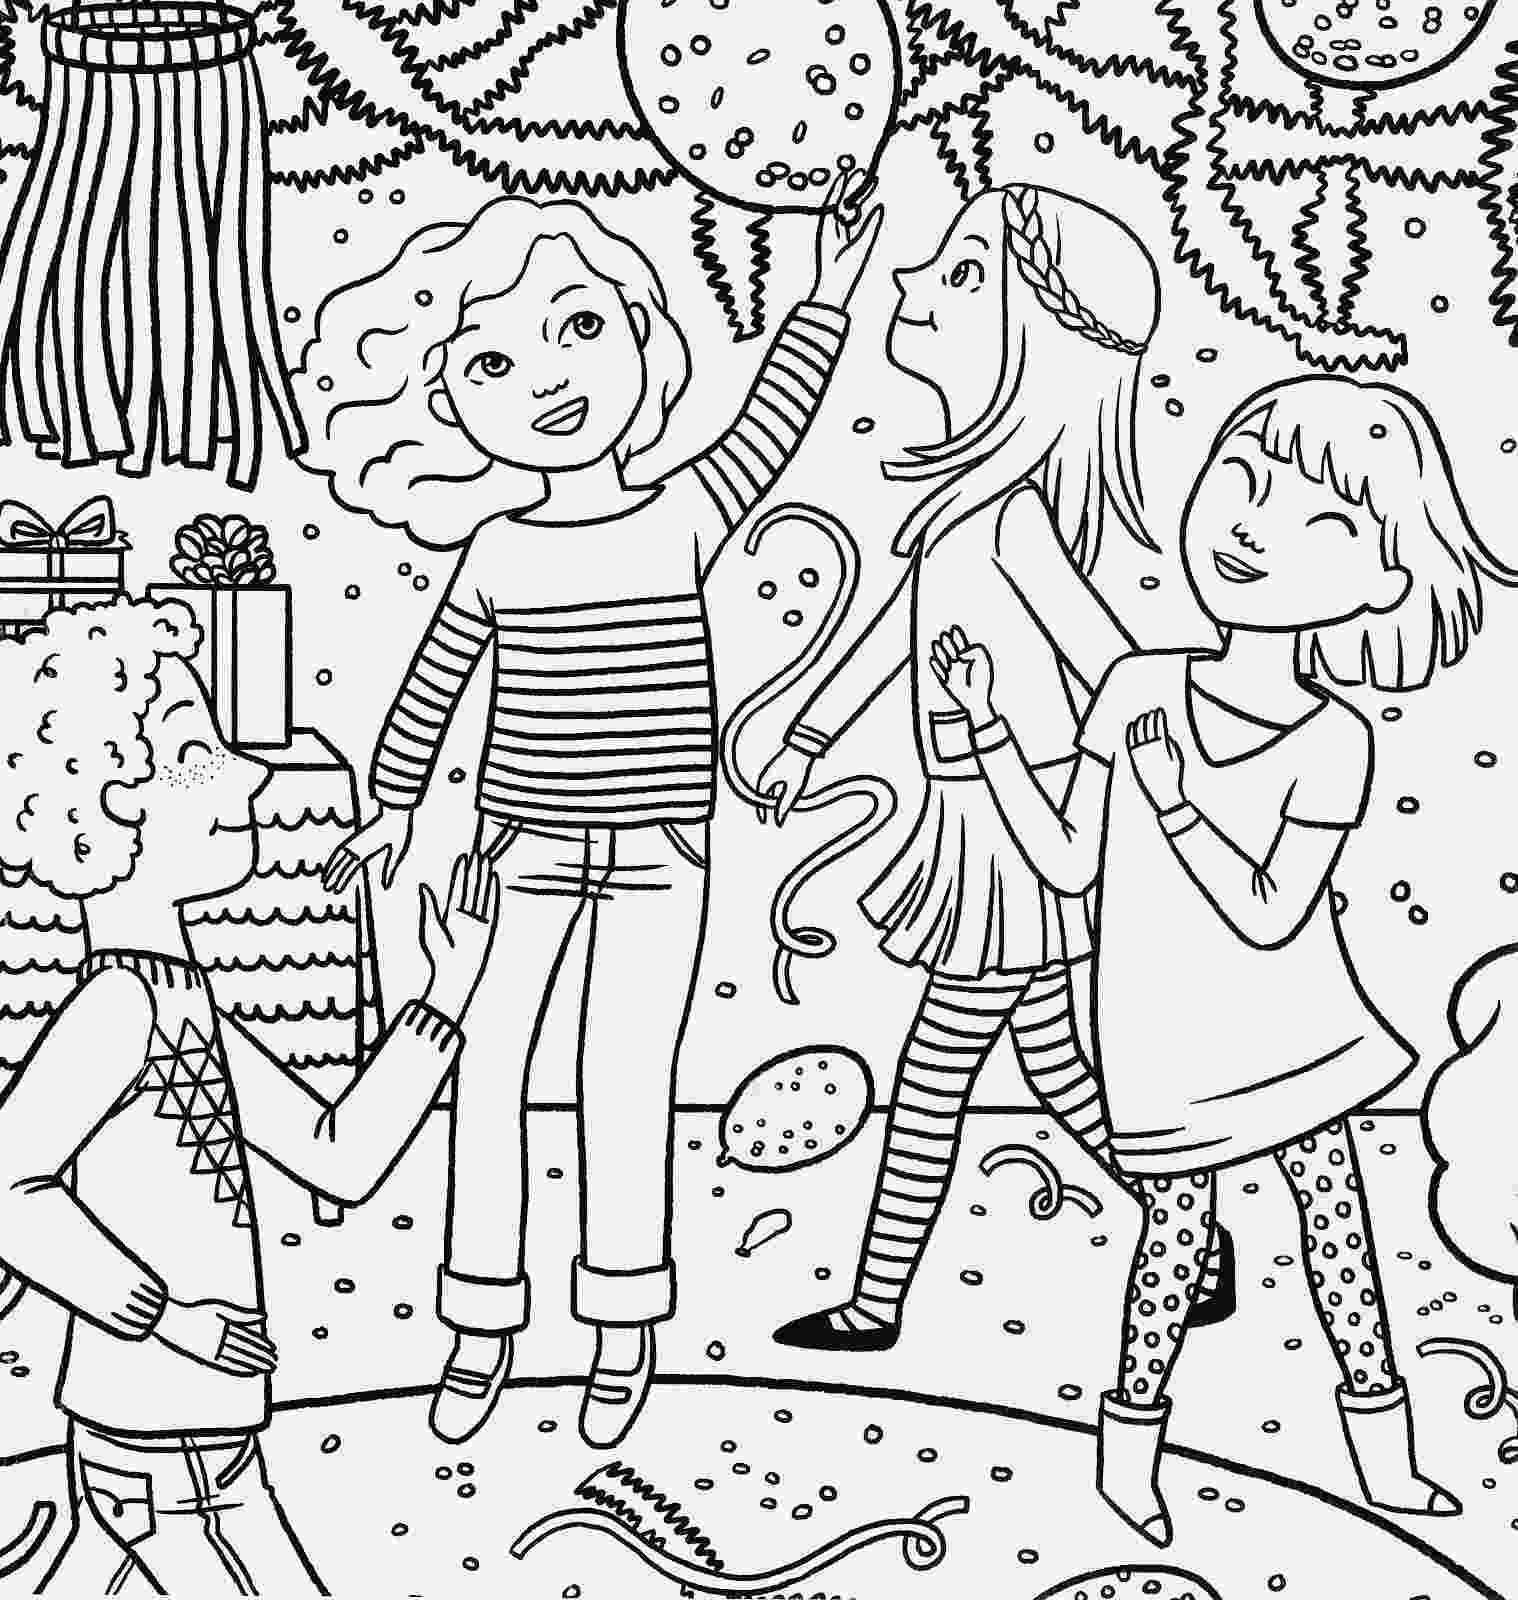 birthday party coloring page birthday coloring pages page coloring party birthday